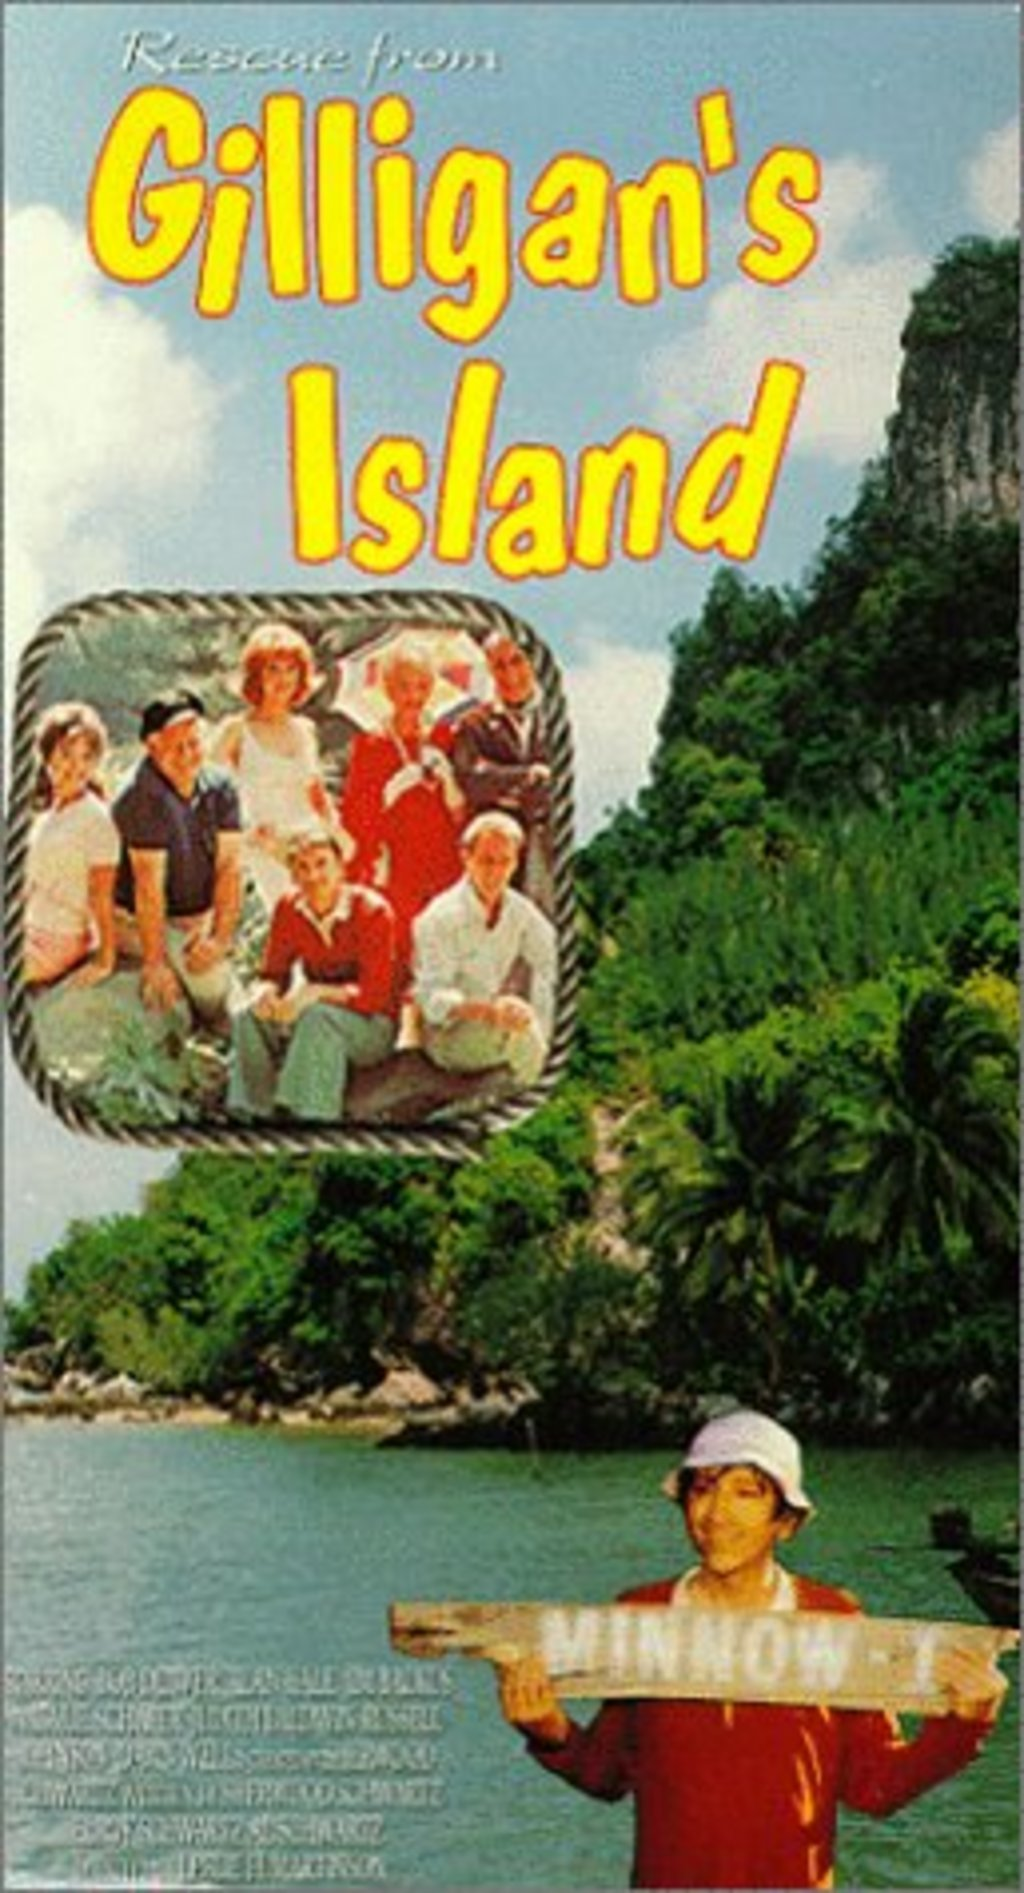 watch rescue from gilligans island on netflix today